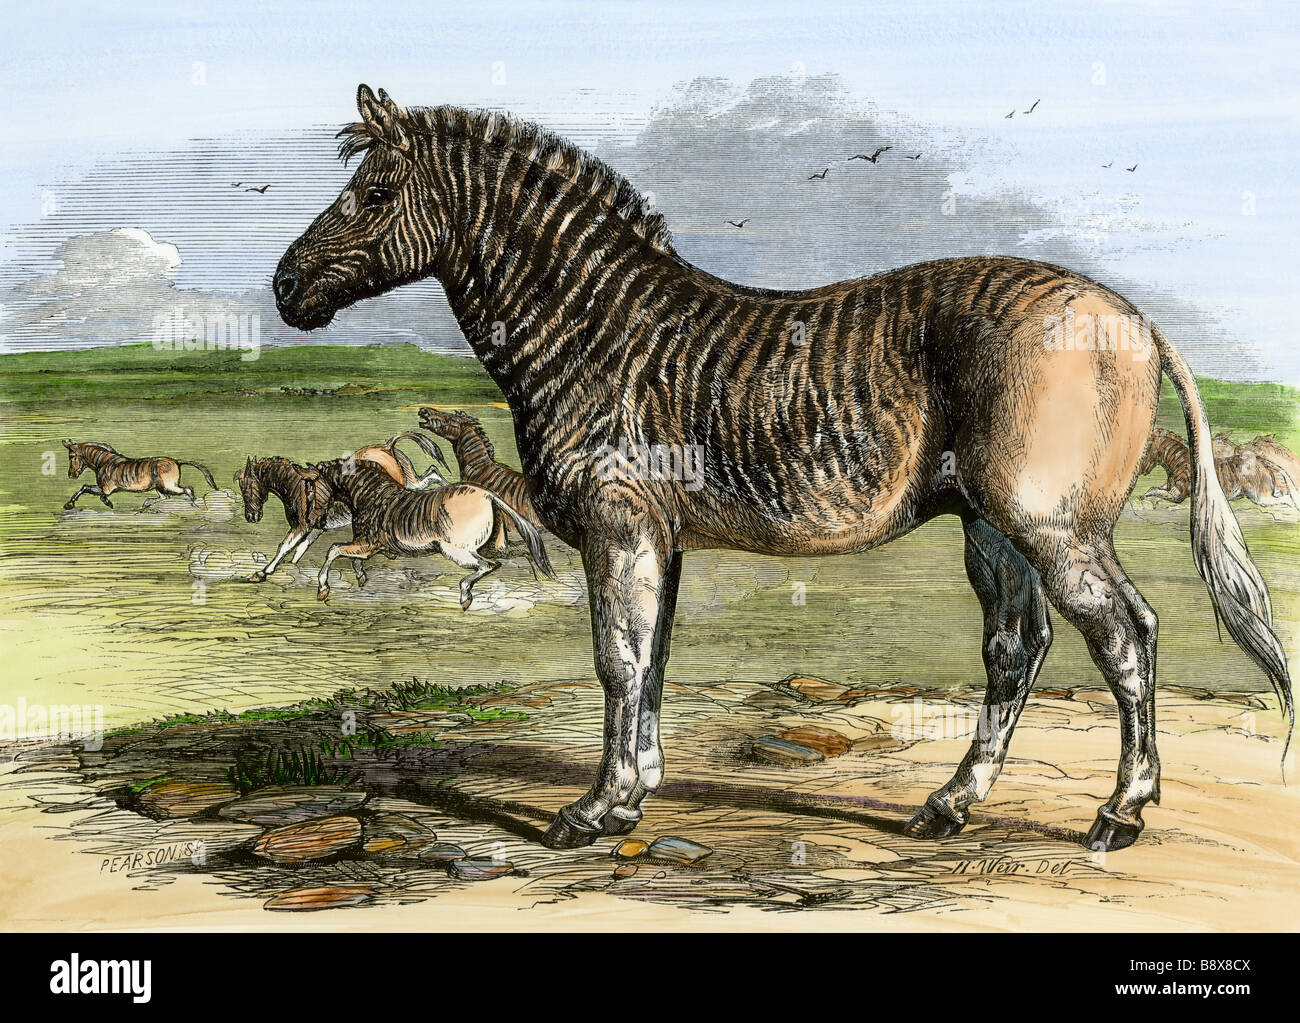 African Quagga, now extinct, in the London Zoo 1850s - Stock Image